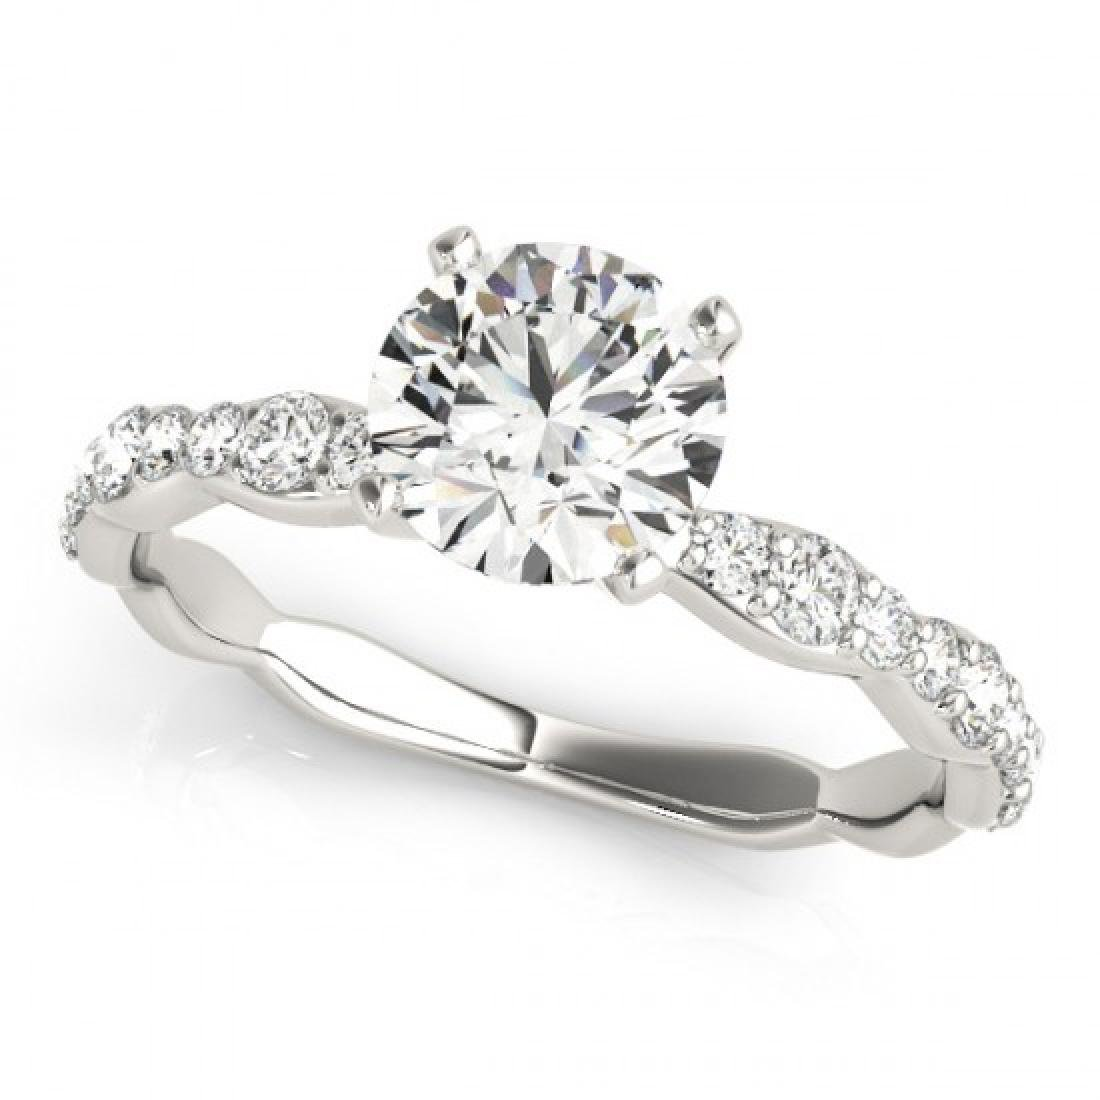 1.4 CTW Certified VS/SI Diamond Solitaire Ring 14K - 2